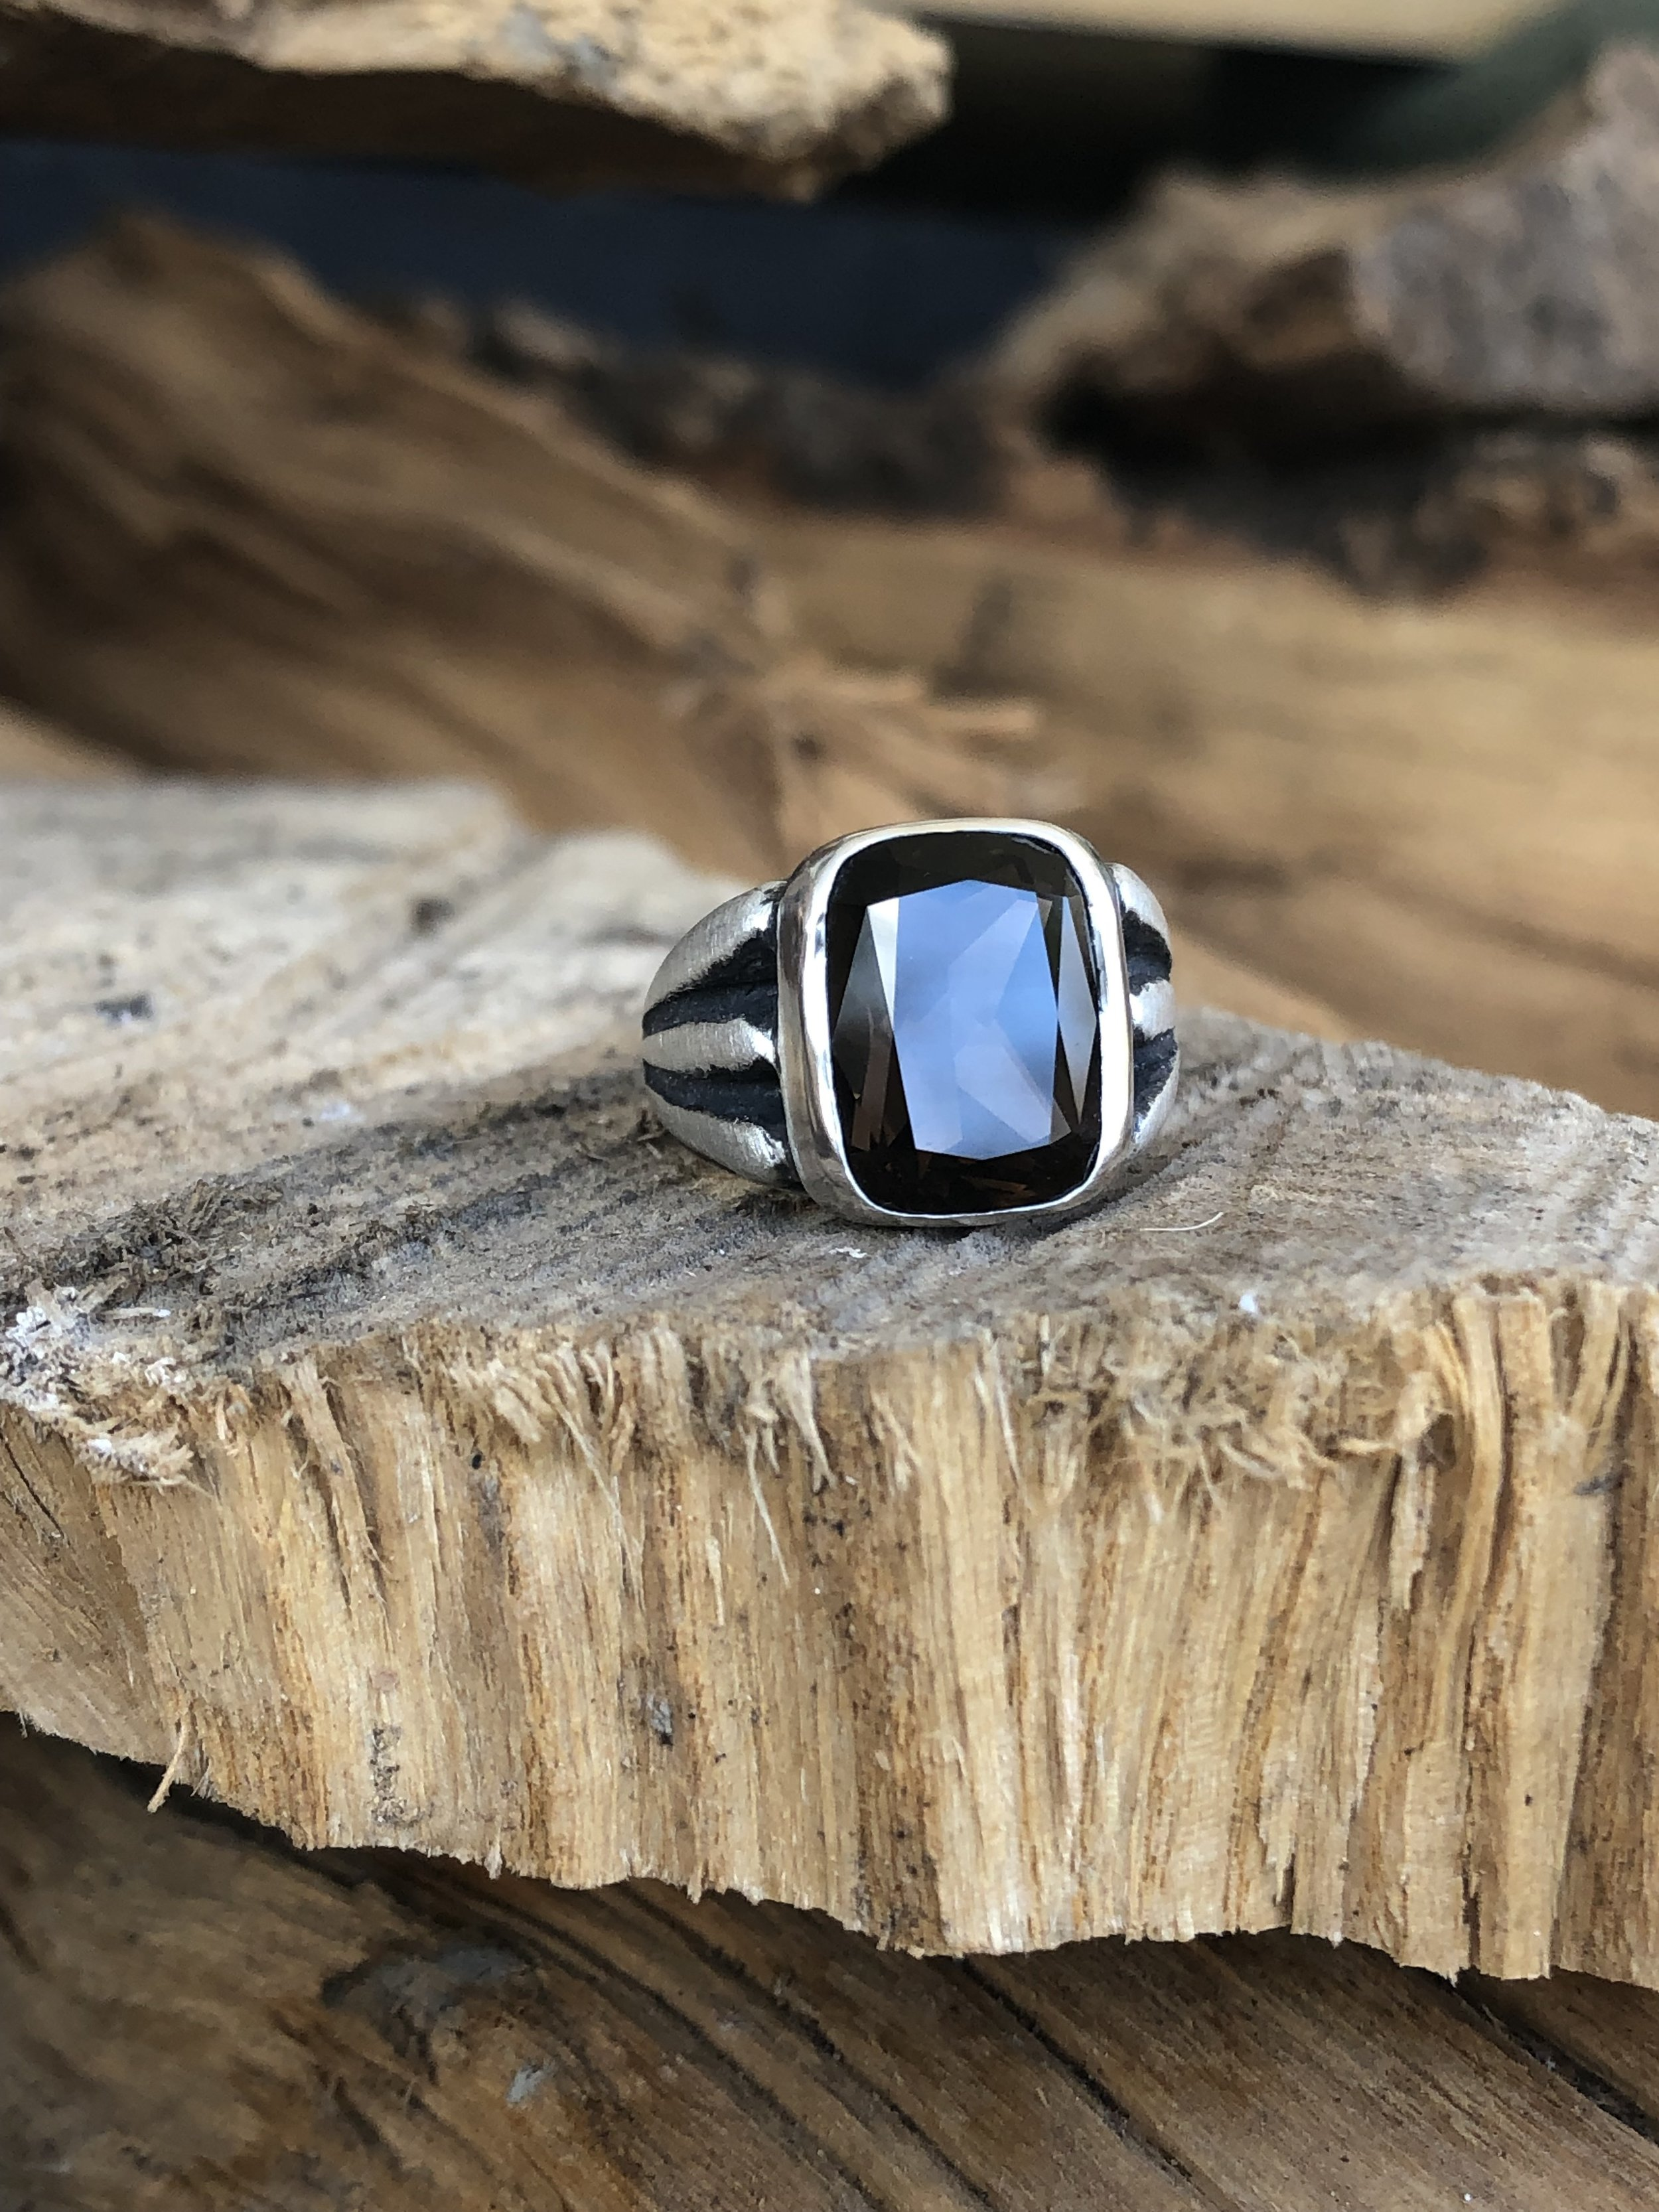 Mother's Ring with Smokey Topaz Stone:  Solid Sterling Silver with Rustic Black Finish